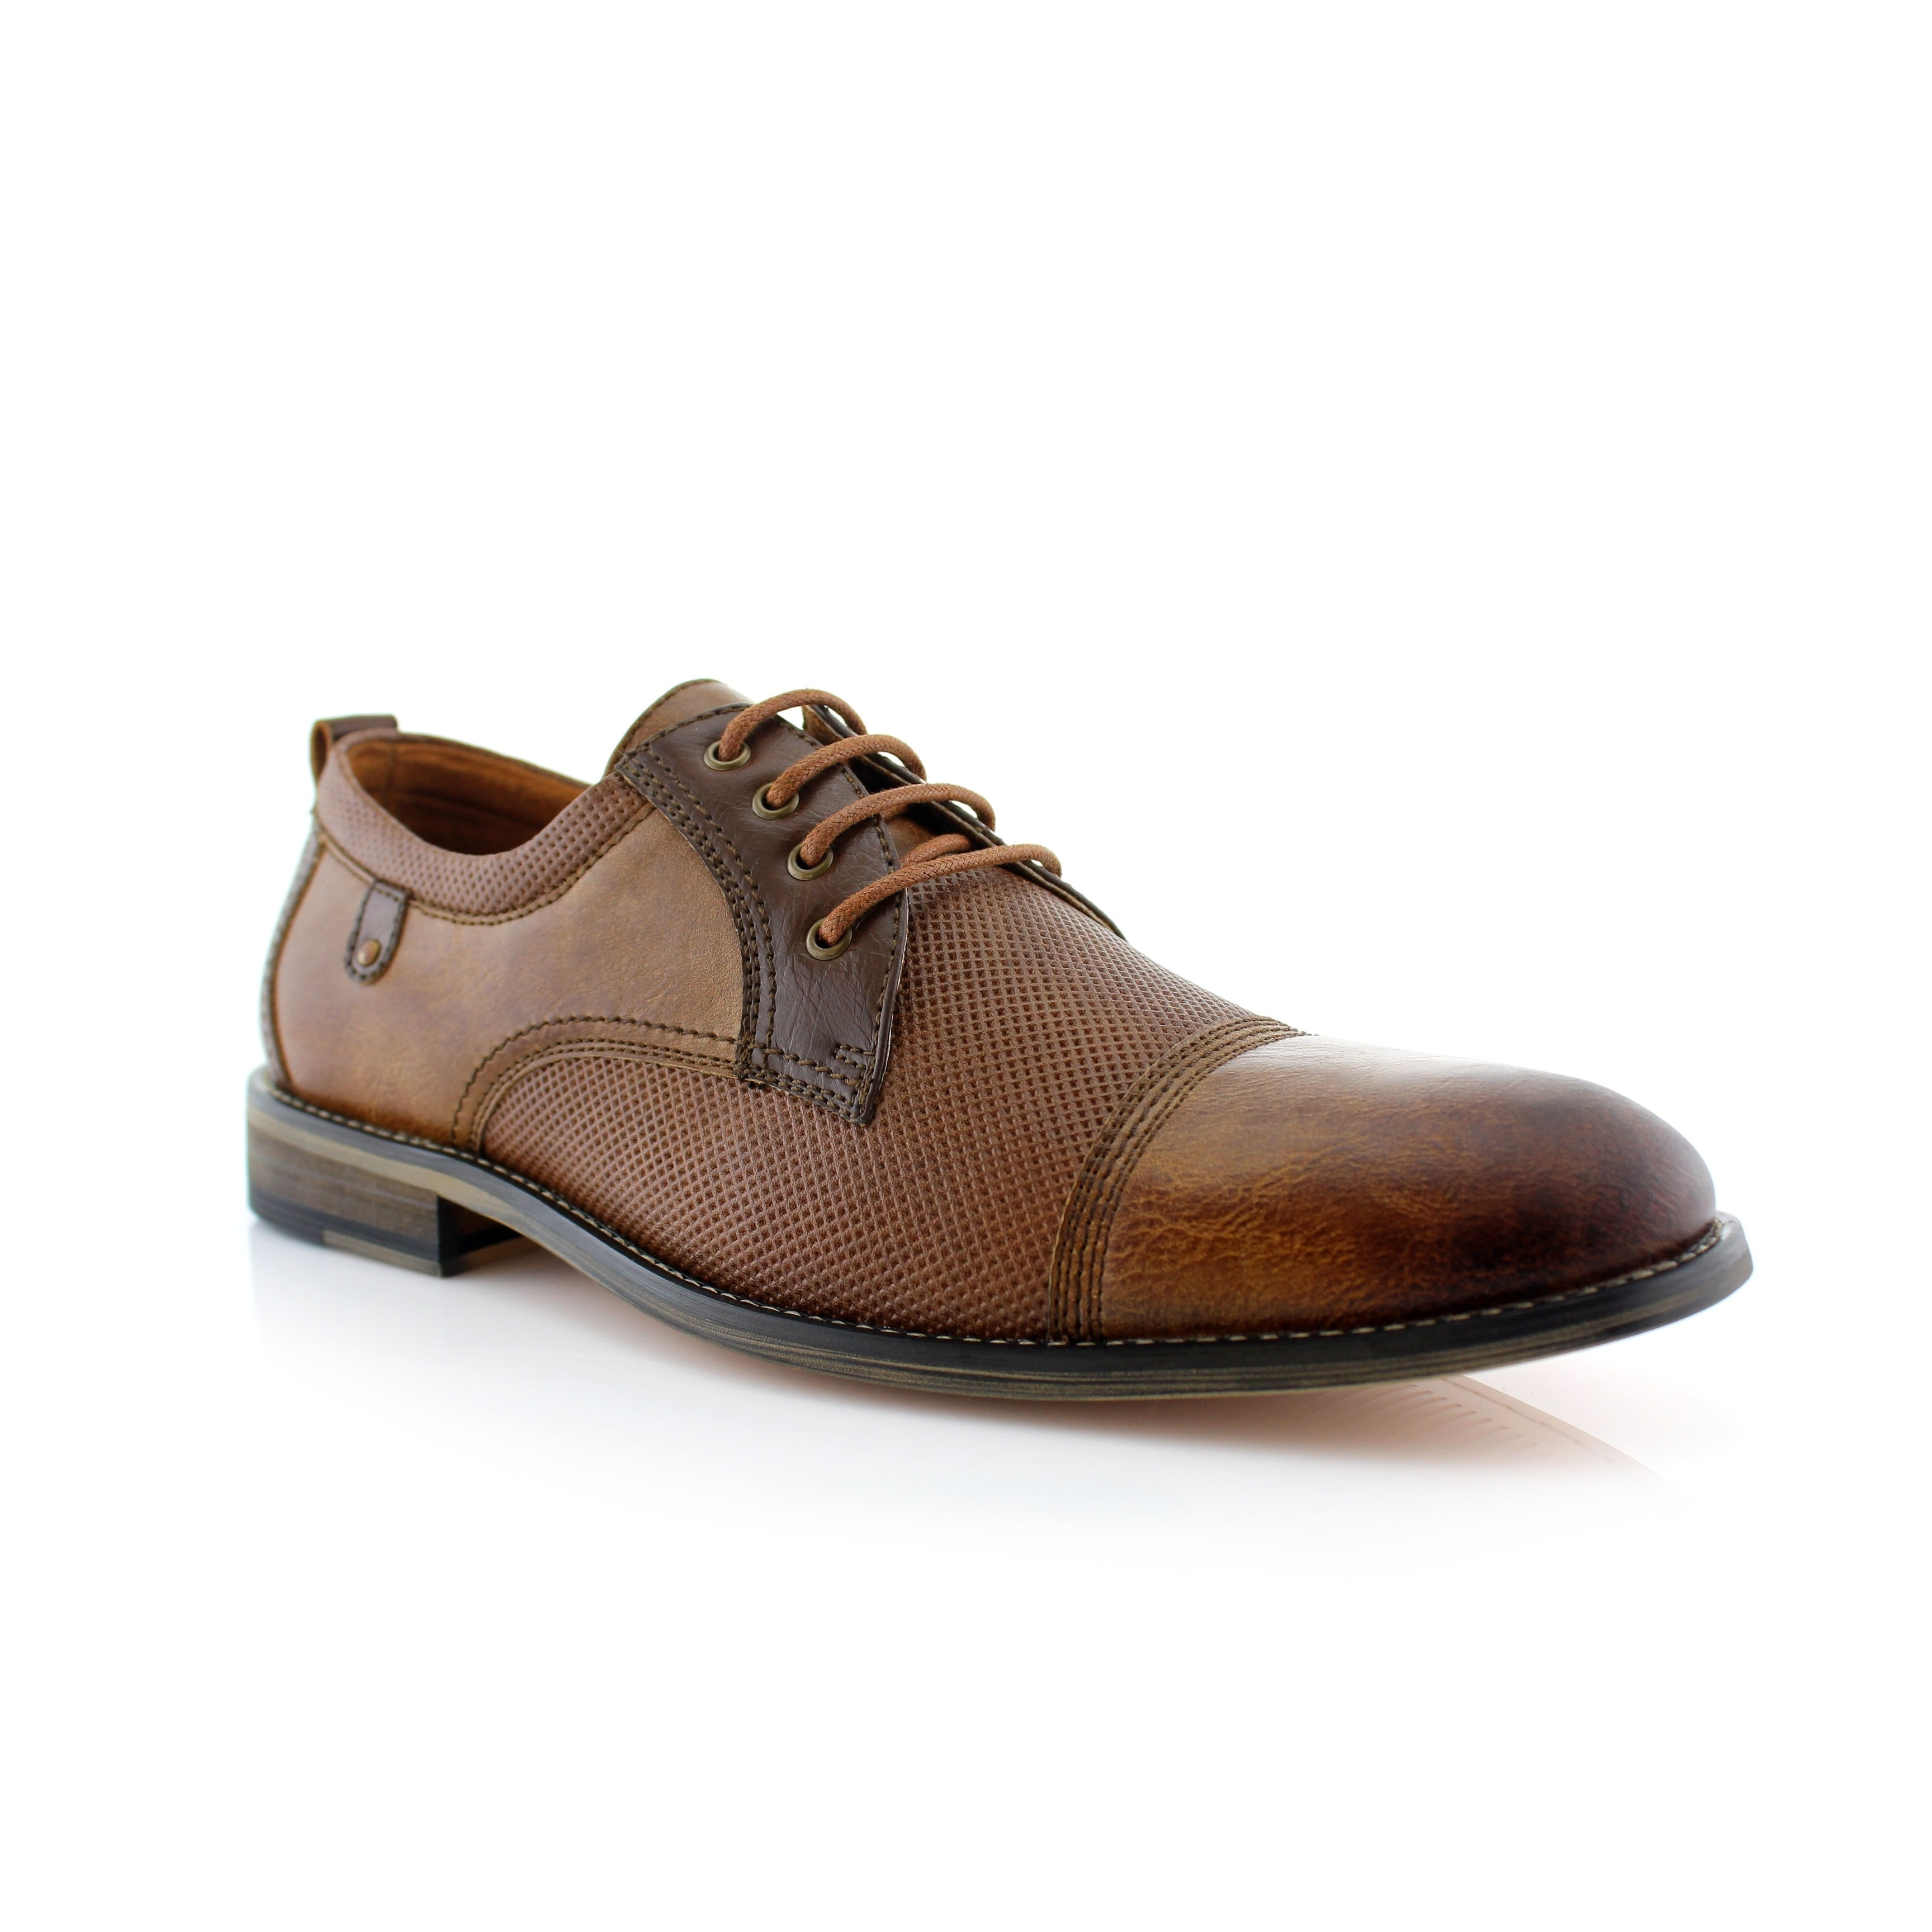 2472e2c58e Shop Ferro Aldo Felix MFA19605L Men's Dress Shoes For Work or Casual ...